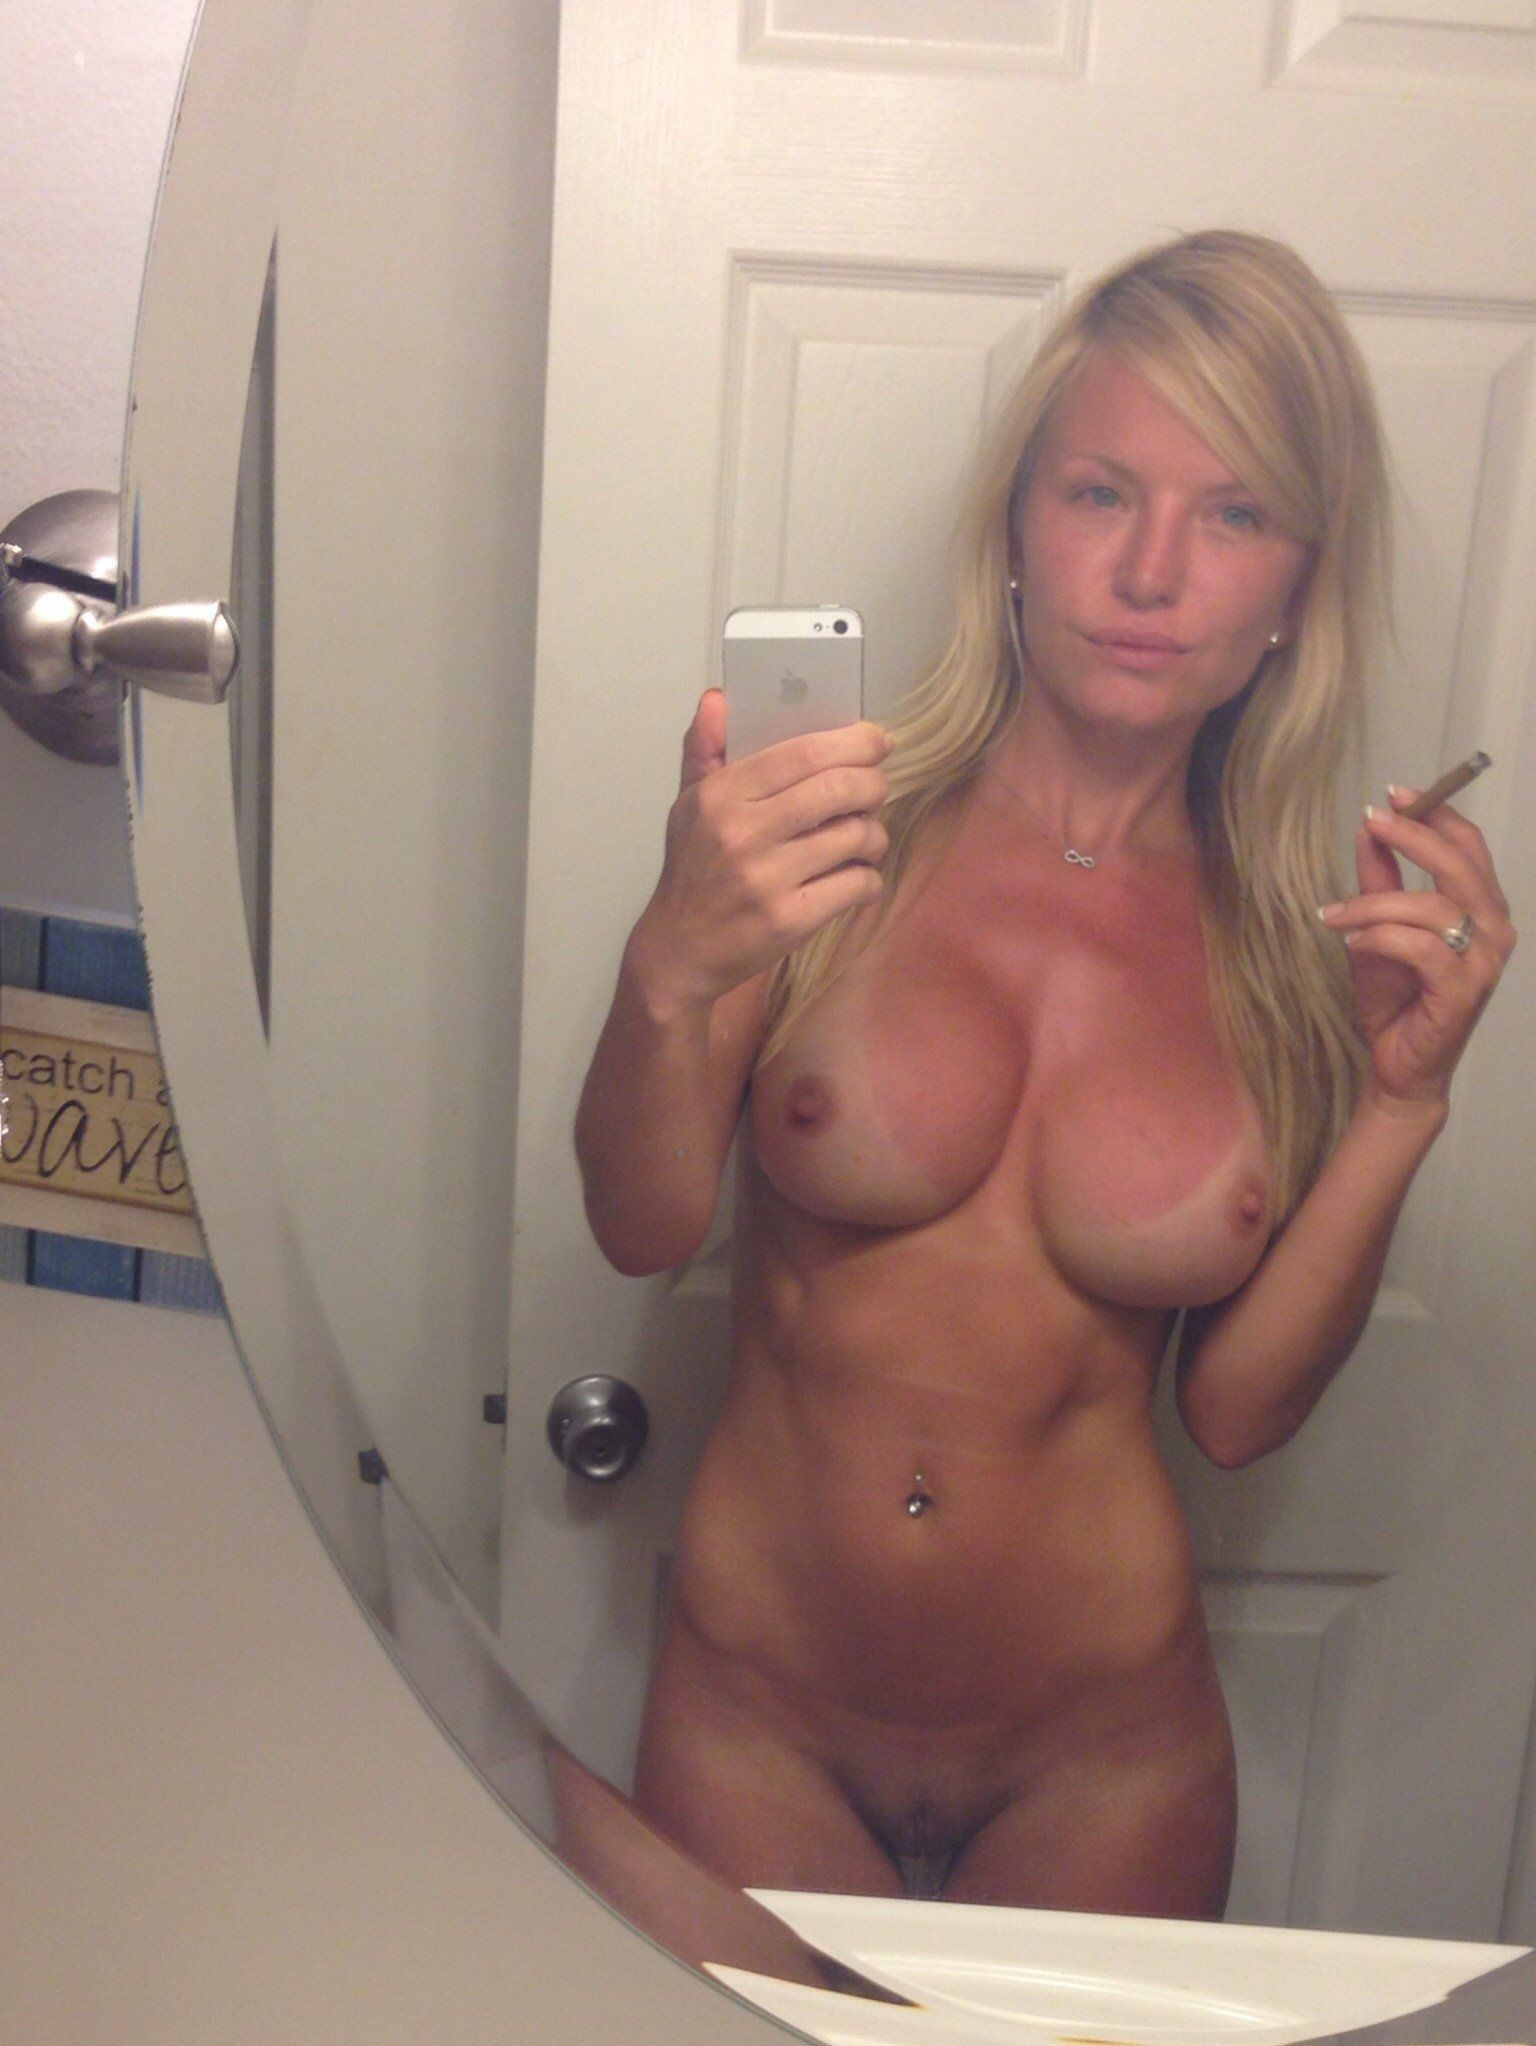 Countess recommendet shot Mature naked woman self